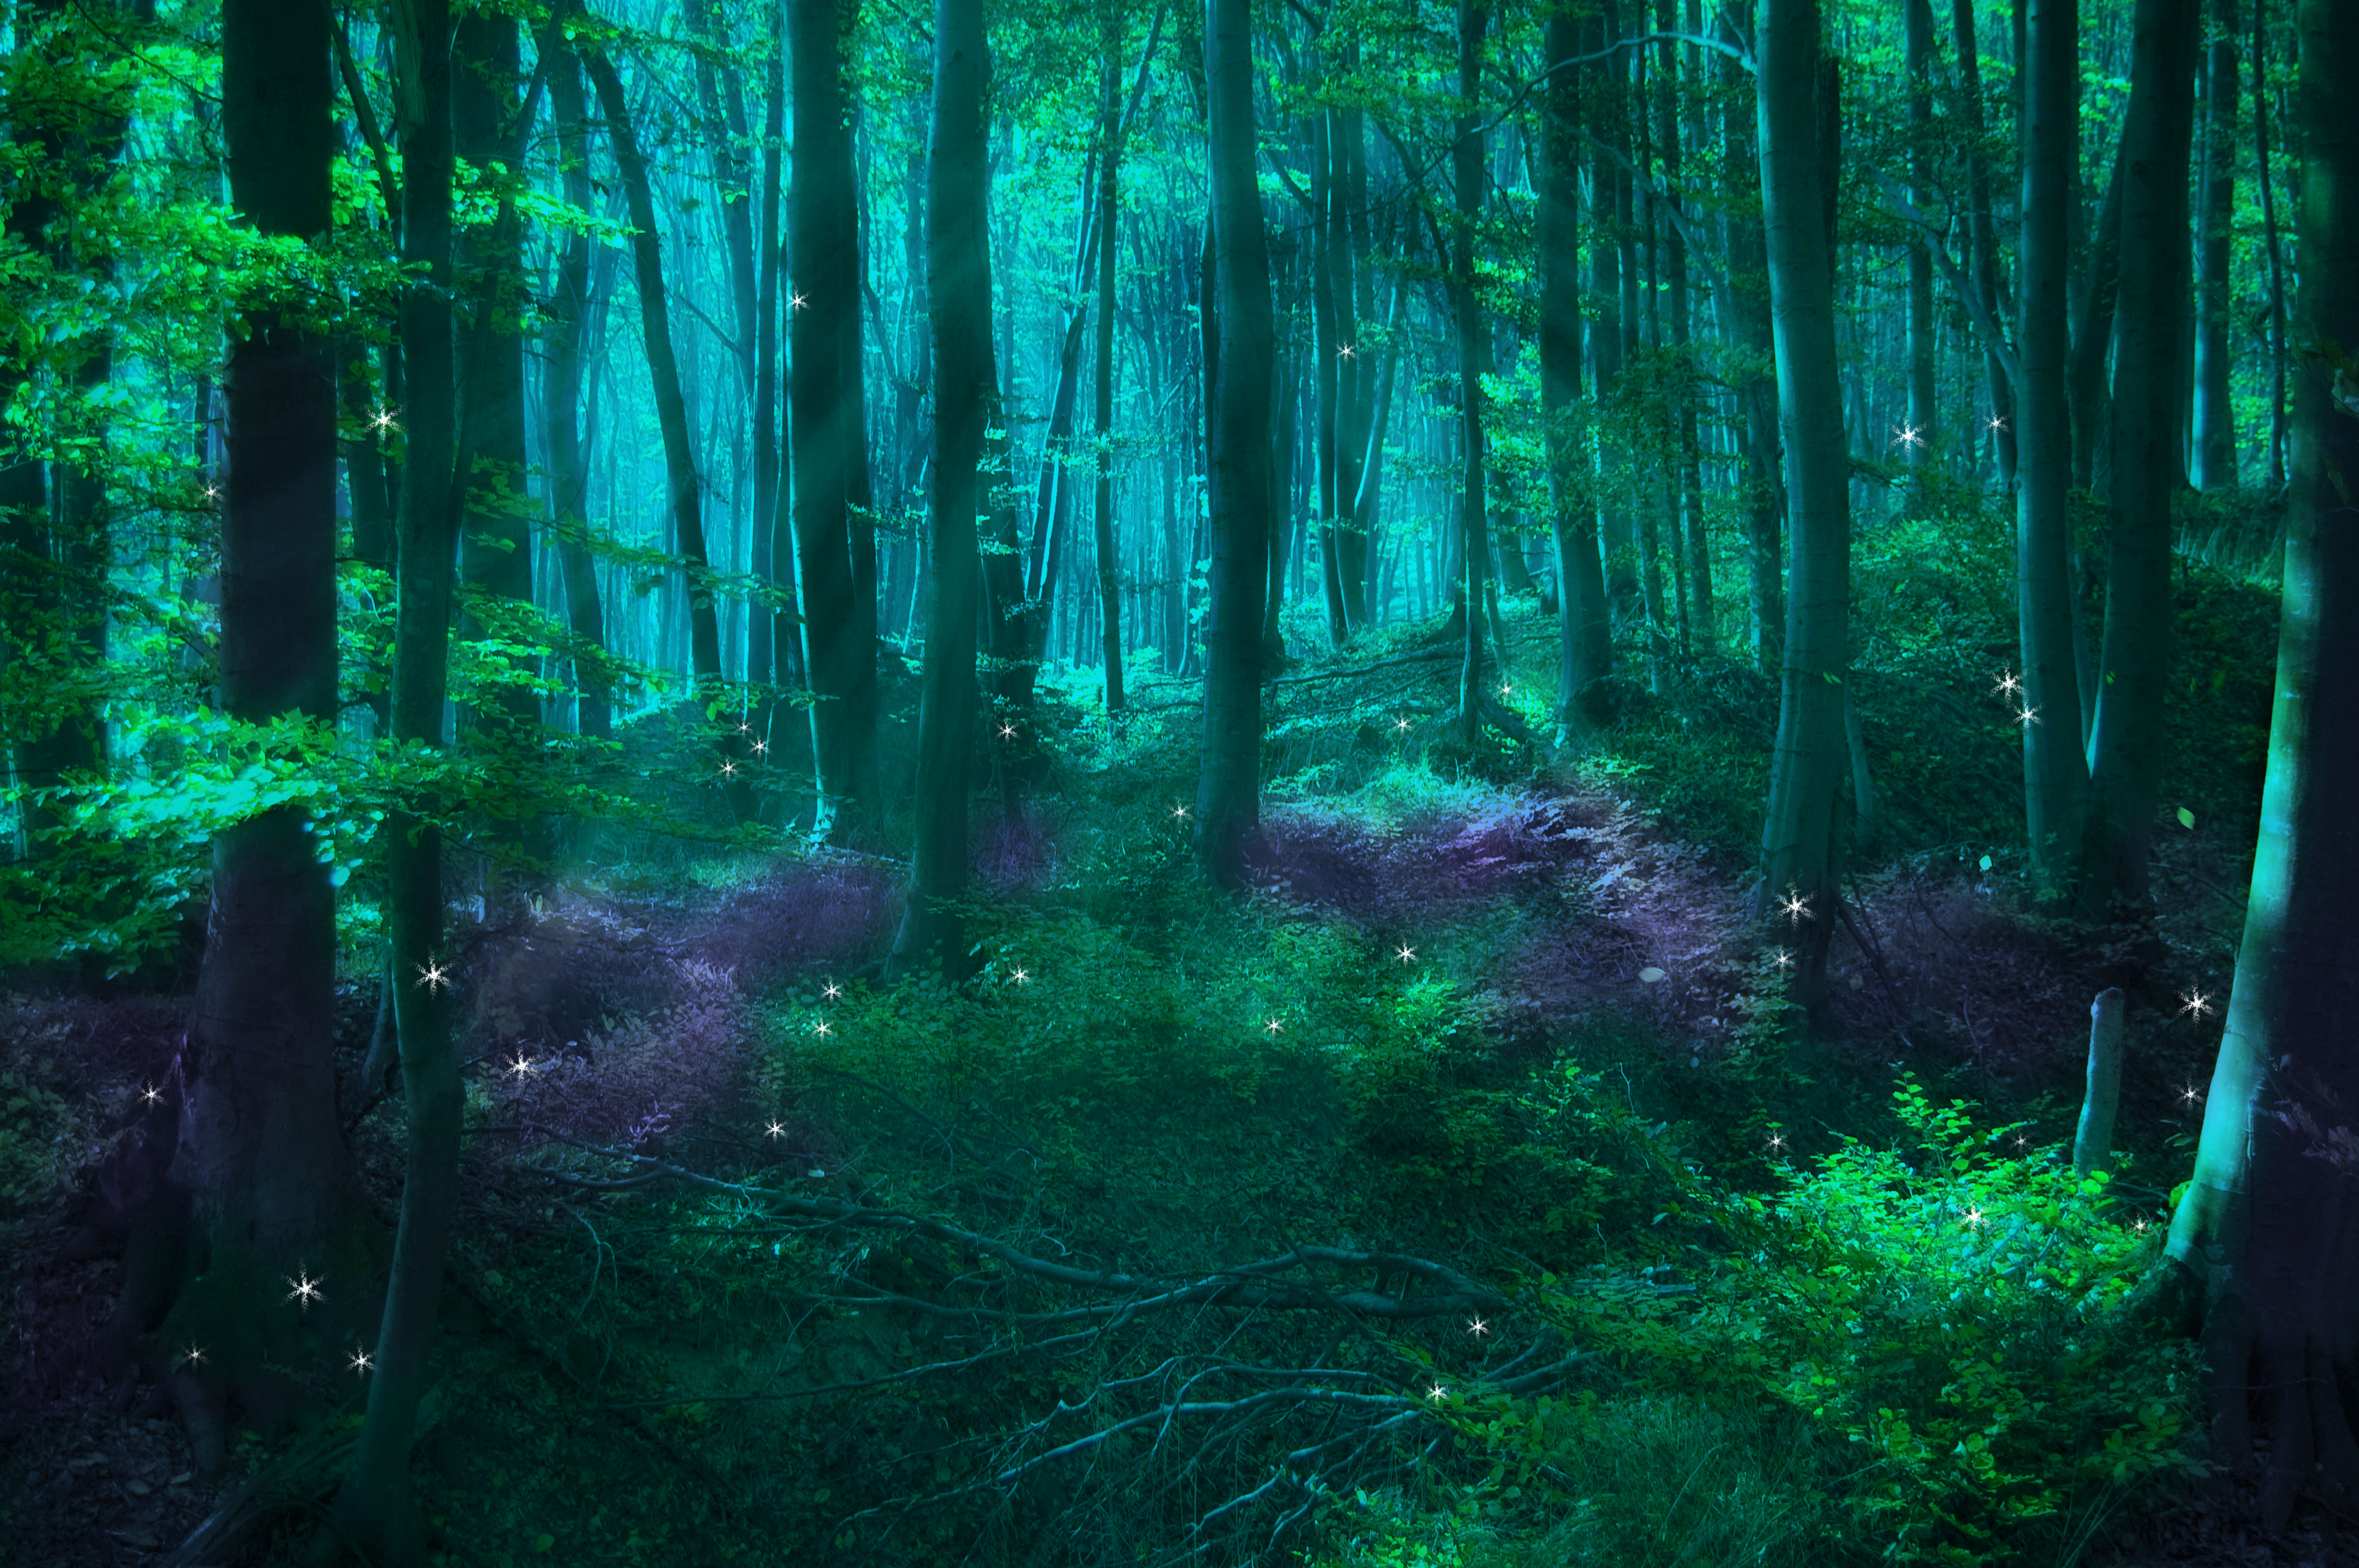 enchanted fairy forest - HD6016×4000